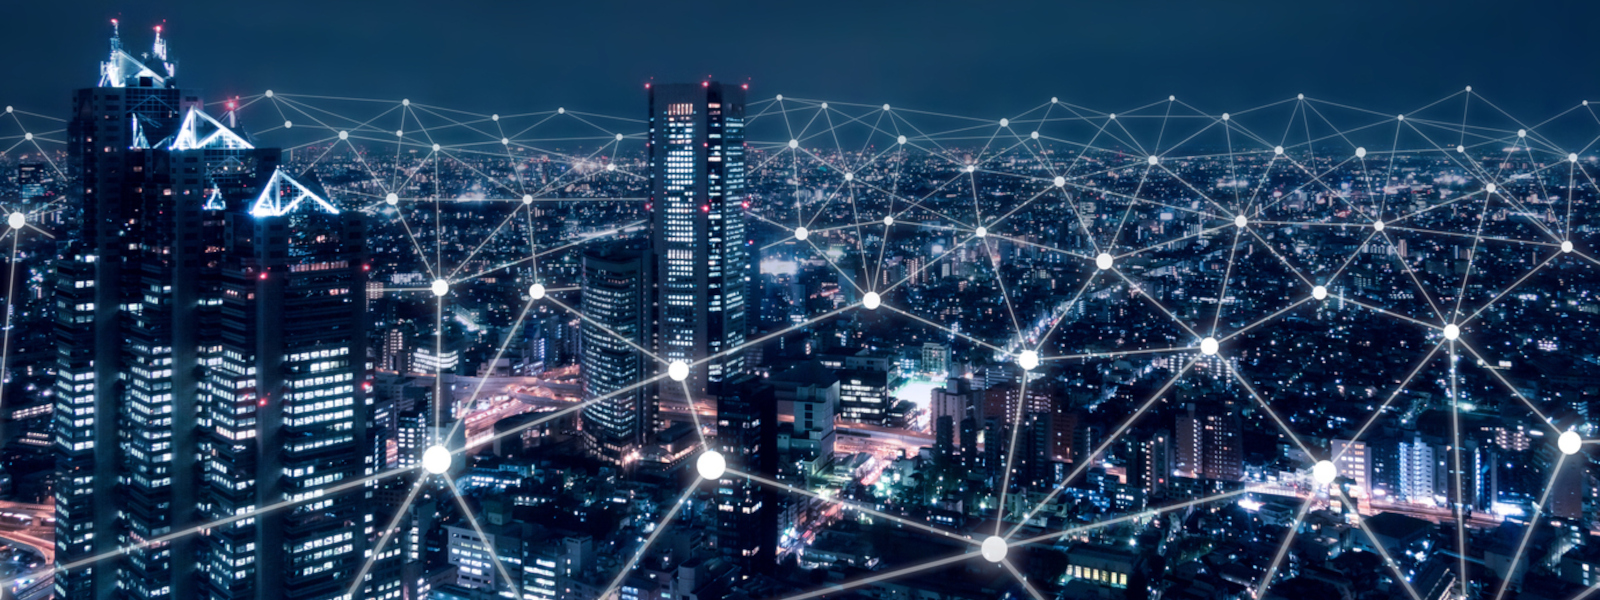 New Horizons awards image shows a city at night connected by a digital network